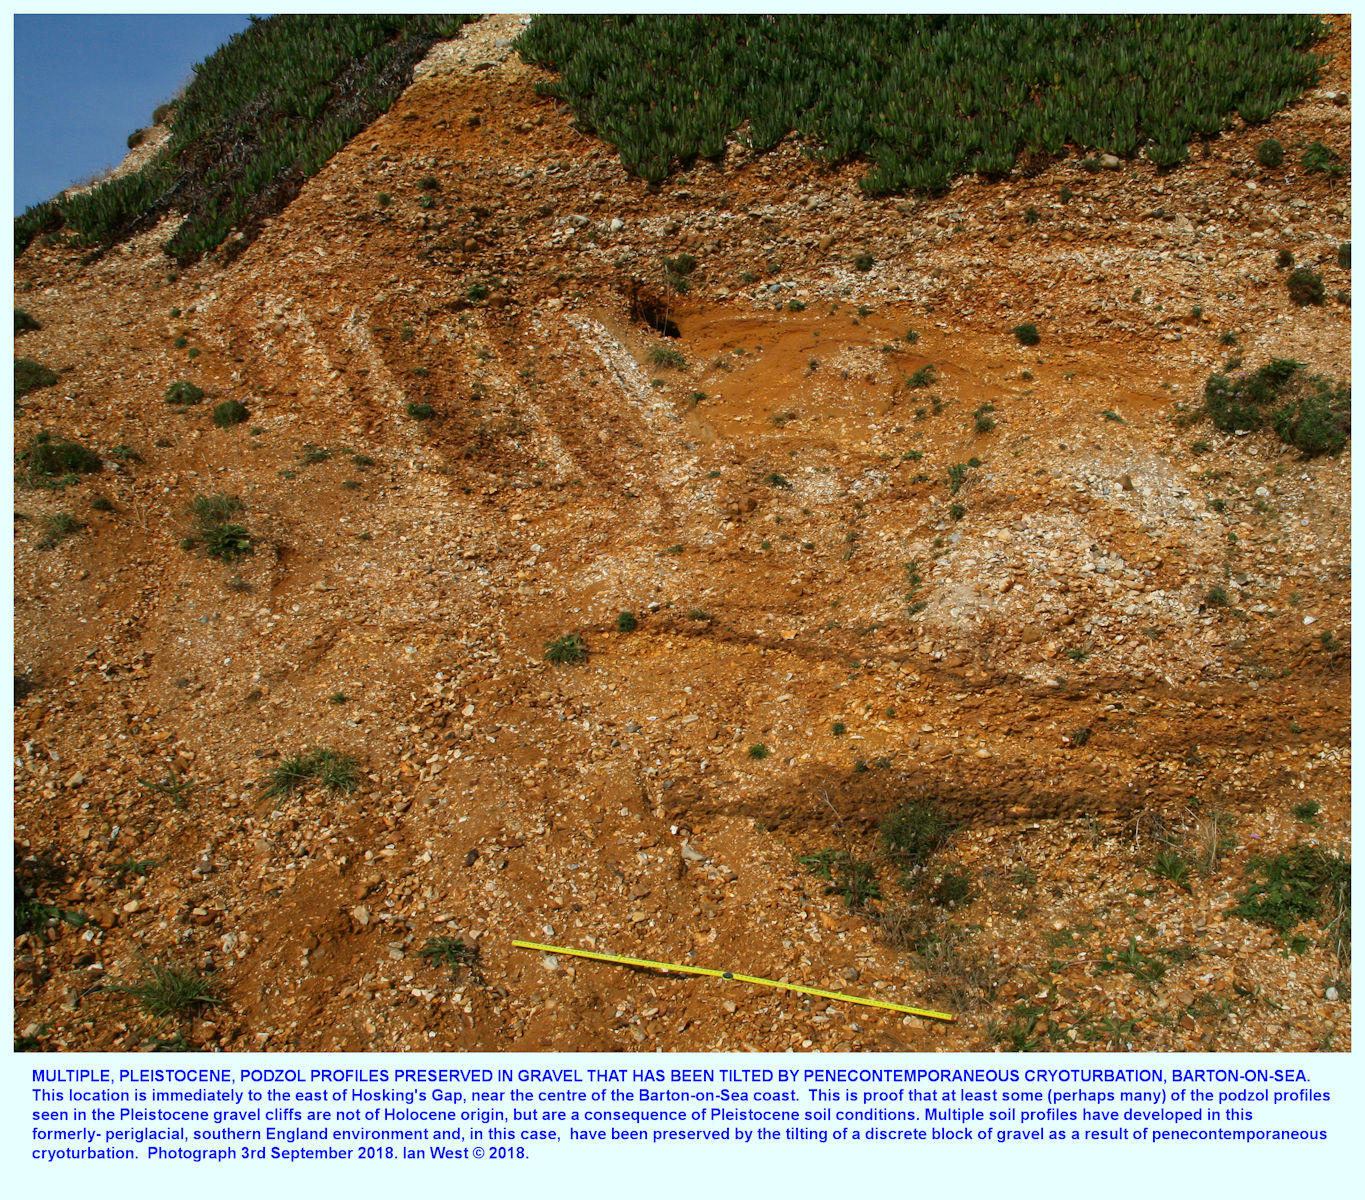 Relatively complex origin of the Pleistocene gravel at Barton-on-Sea, with multiple podzol profiles within a block which has subsequently been tilted by periglacial freeze and thaw, - cryoturbation processes, east side, adjacent to Hoskins Gap, Barton-on-Sea, Hampshire